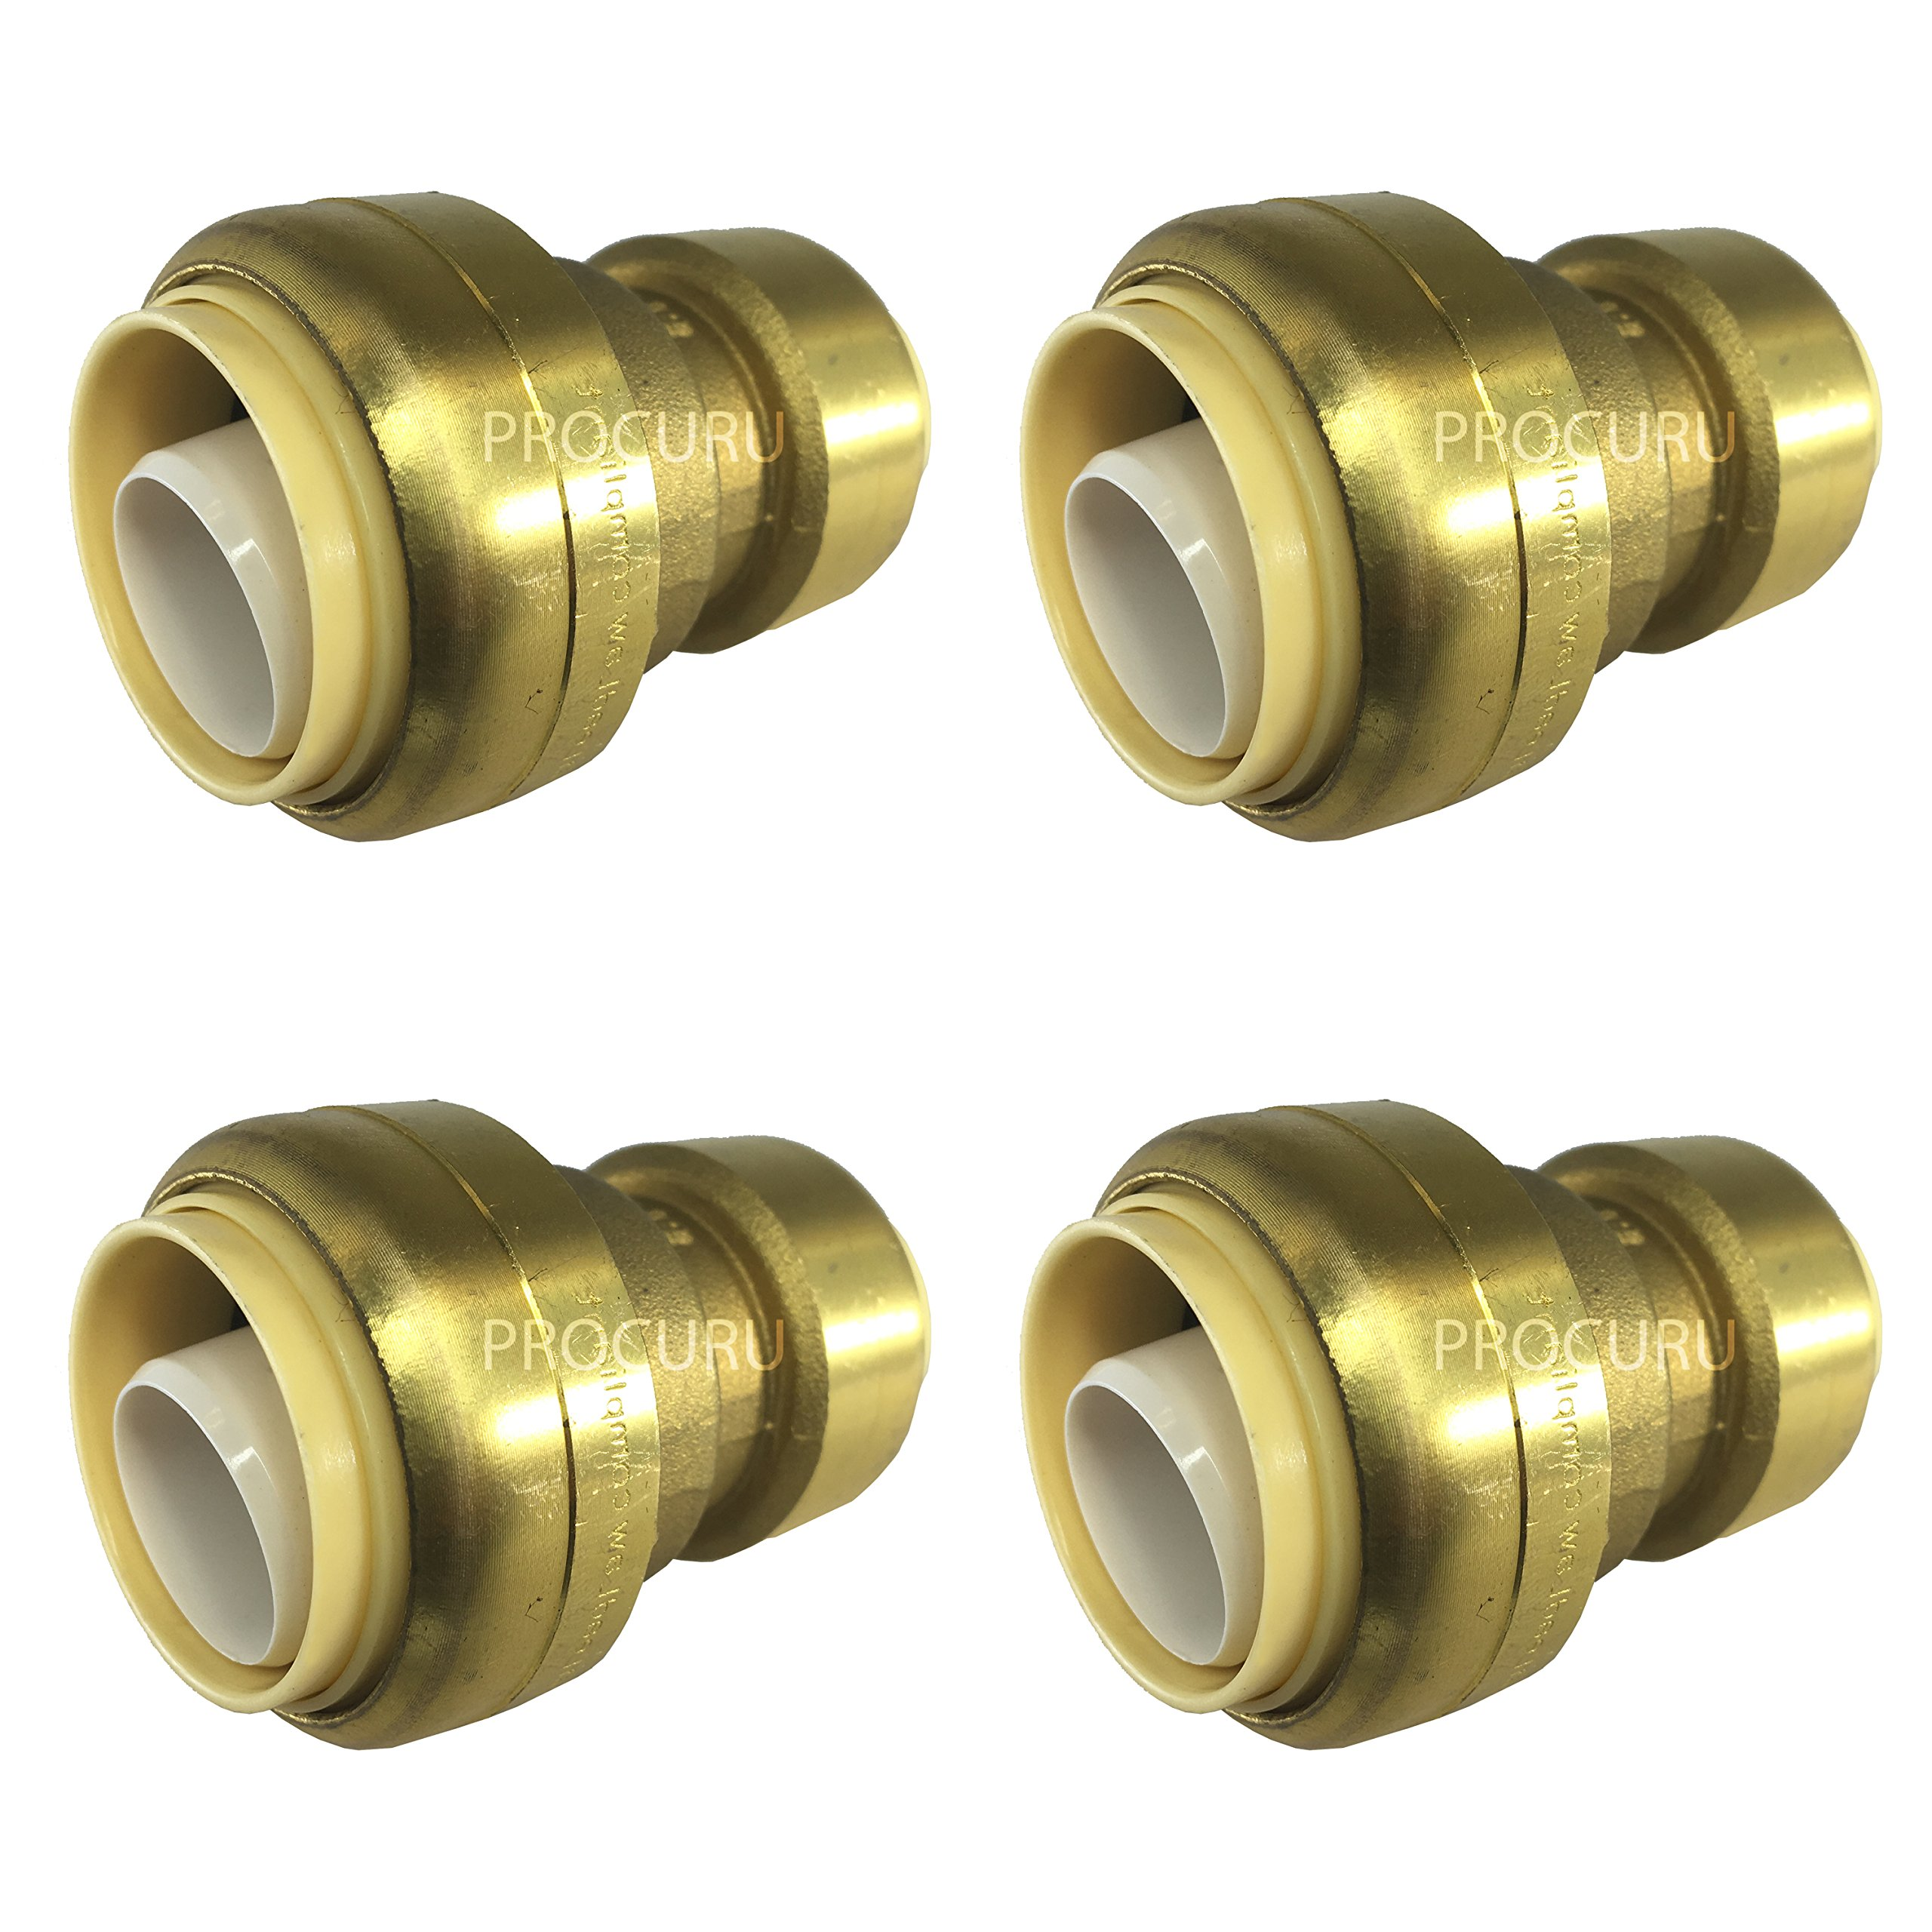 PROCURU PushFit 3/4'' x 1/2'' Reducing Coupling - Plumbing Fitting for Copper, PEX, CPVC, Lead Free Certified (3/4'' x 1/2'', 4-Pack)